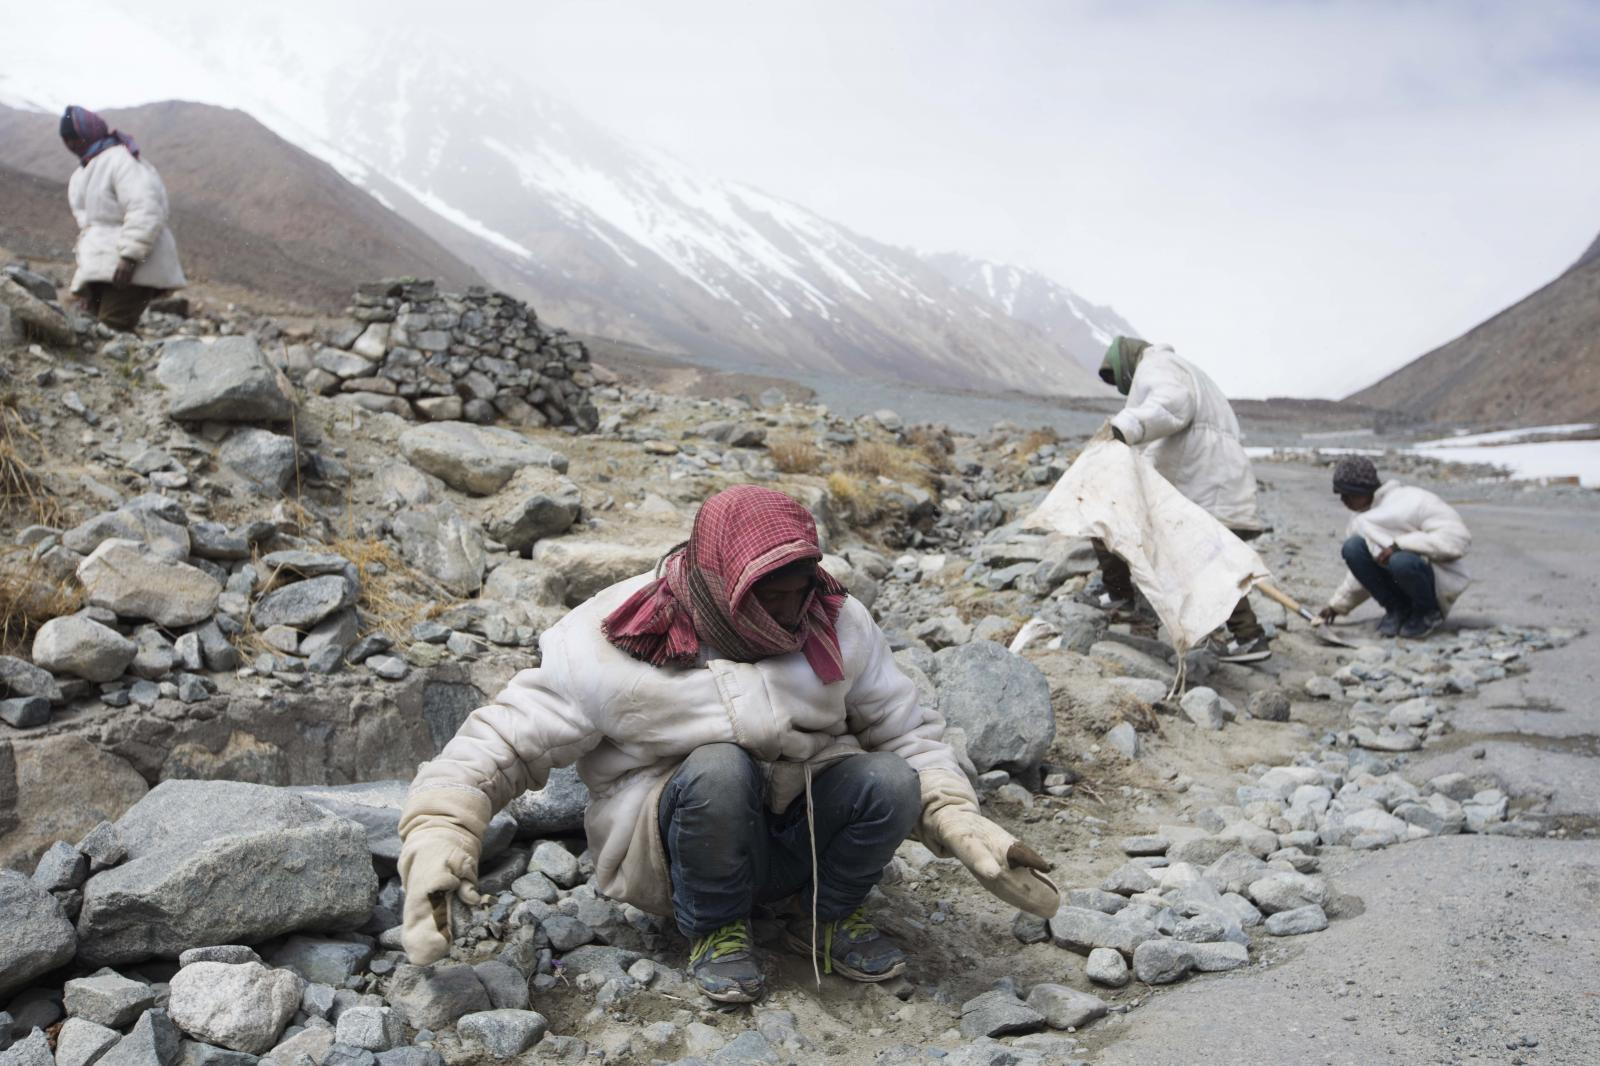 Road maintenance workers from India's low-lying eastern Jharkhand state work along Pangong Lake road in northern India's Ladakh region.